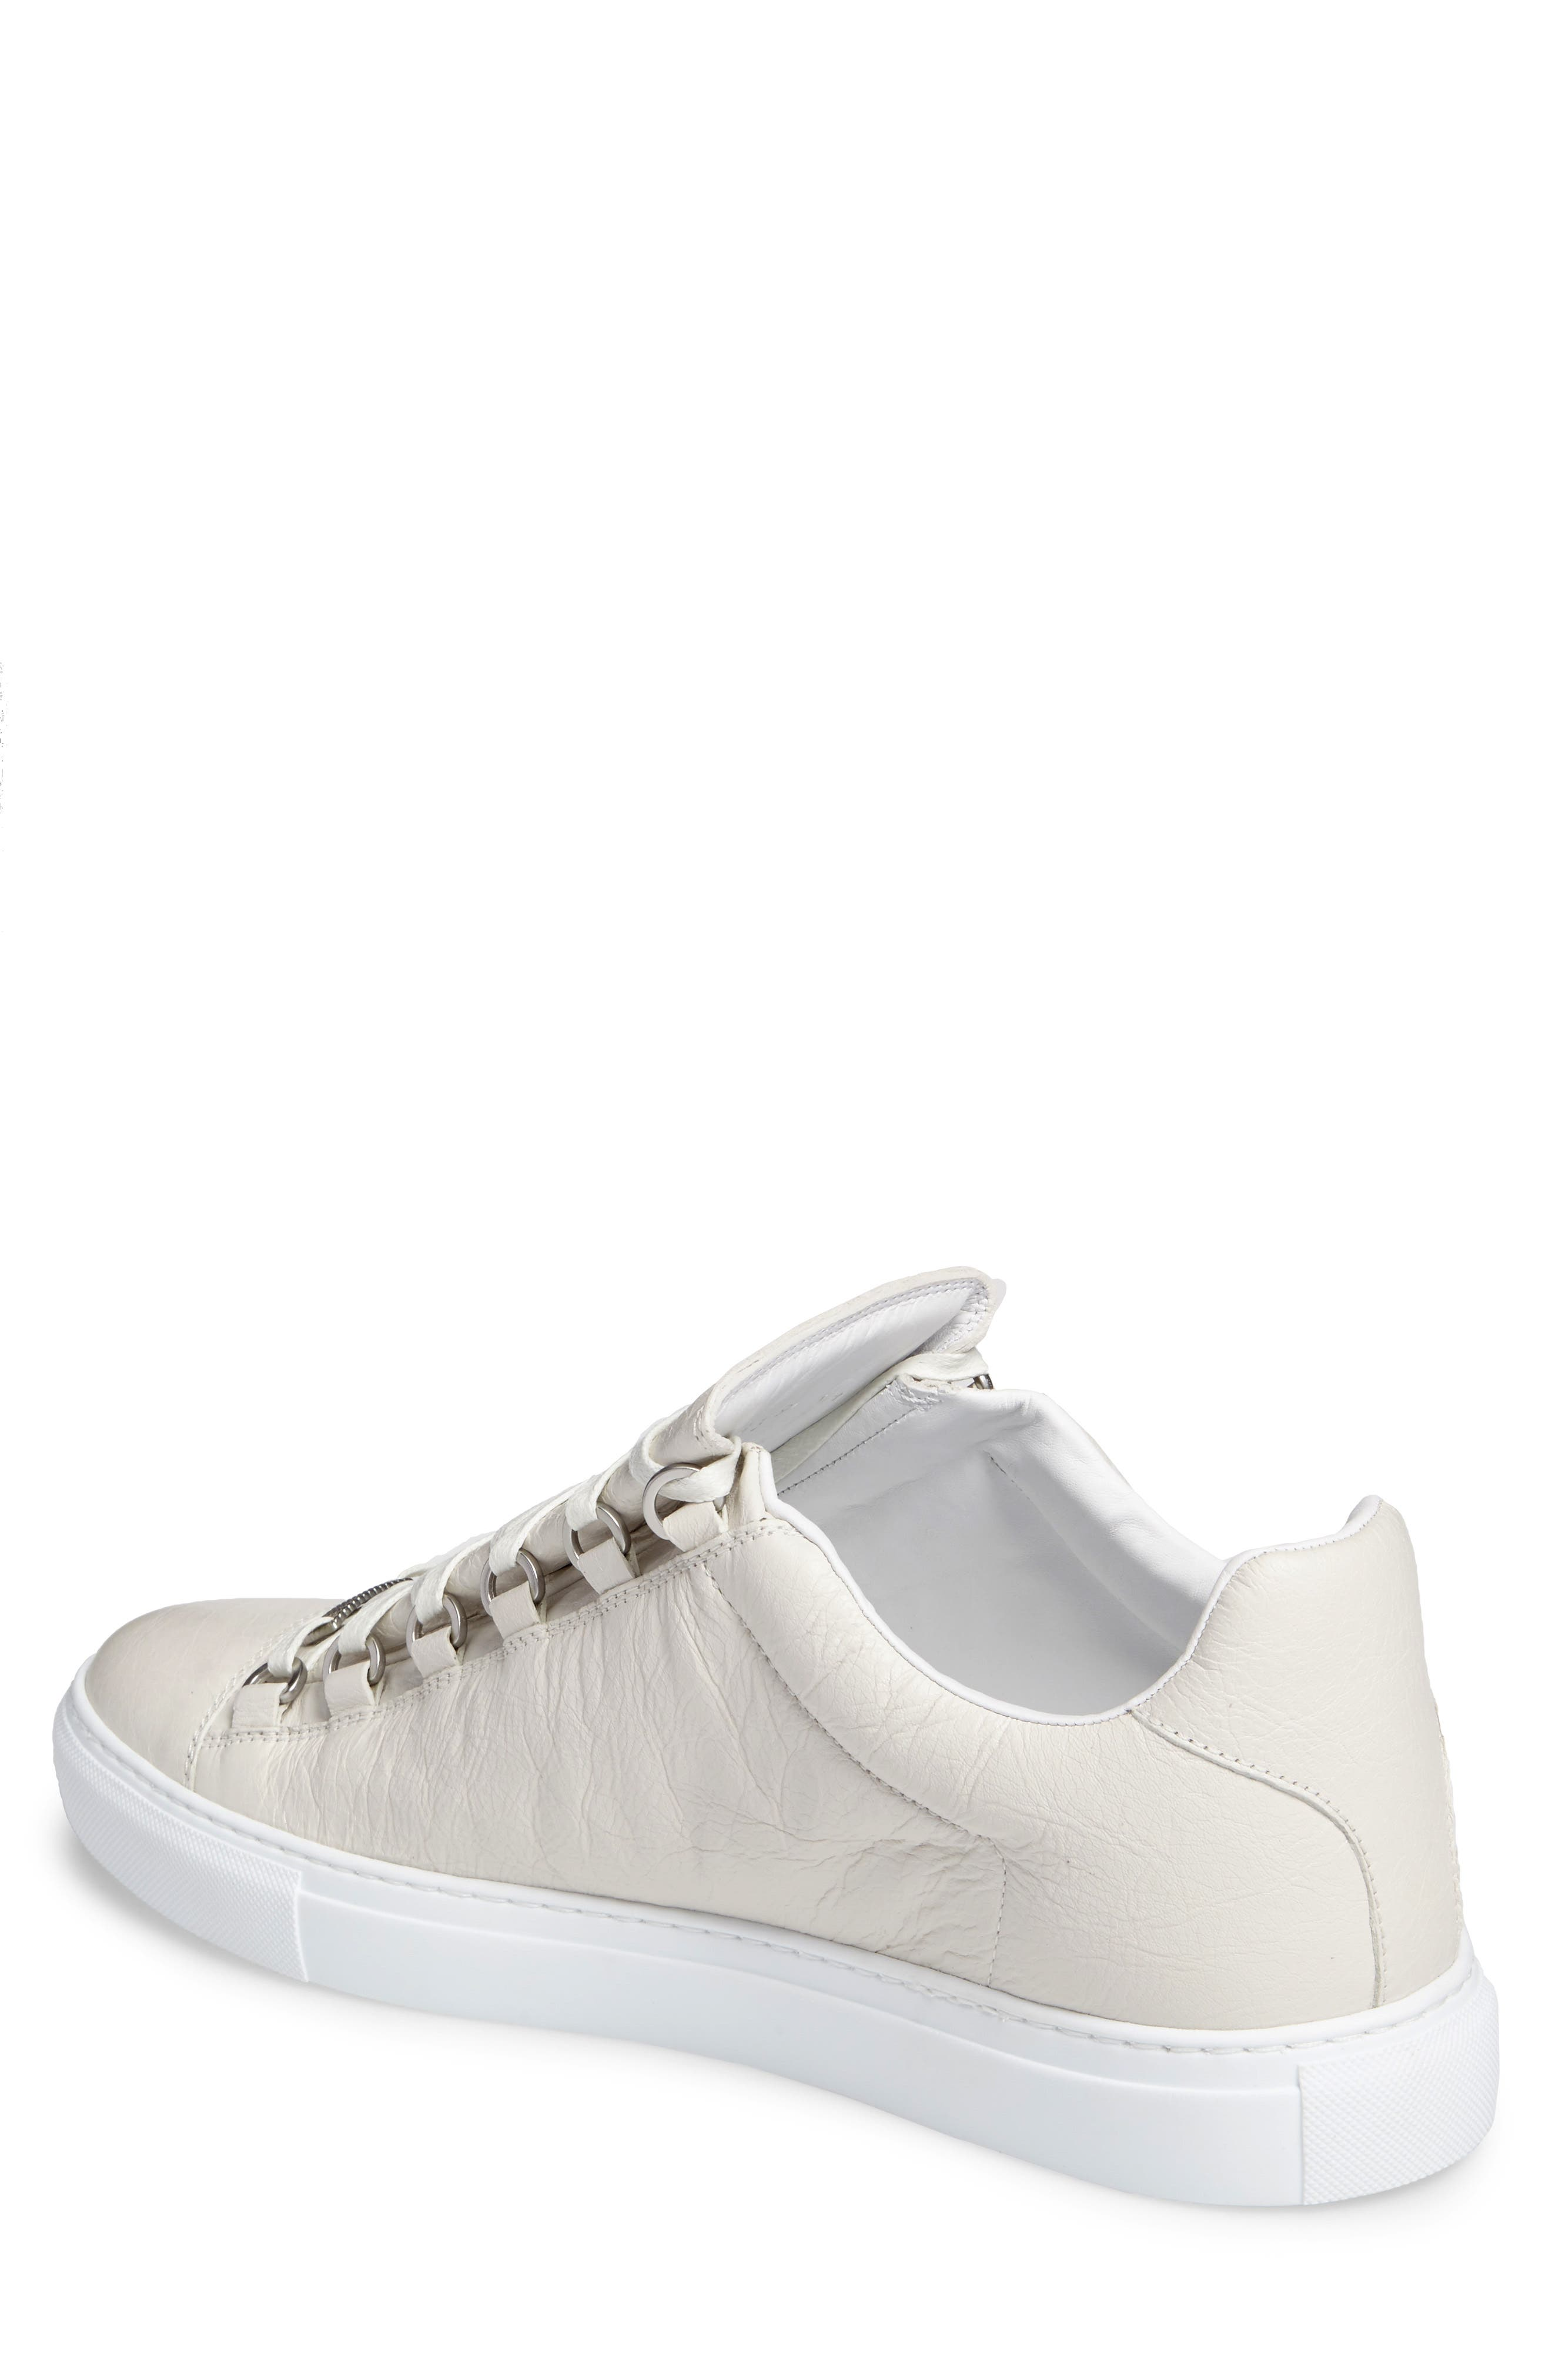 Arena Low Sneaker,                             Alternate thumbnail 2, color,                             Extra Blanc Leather